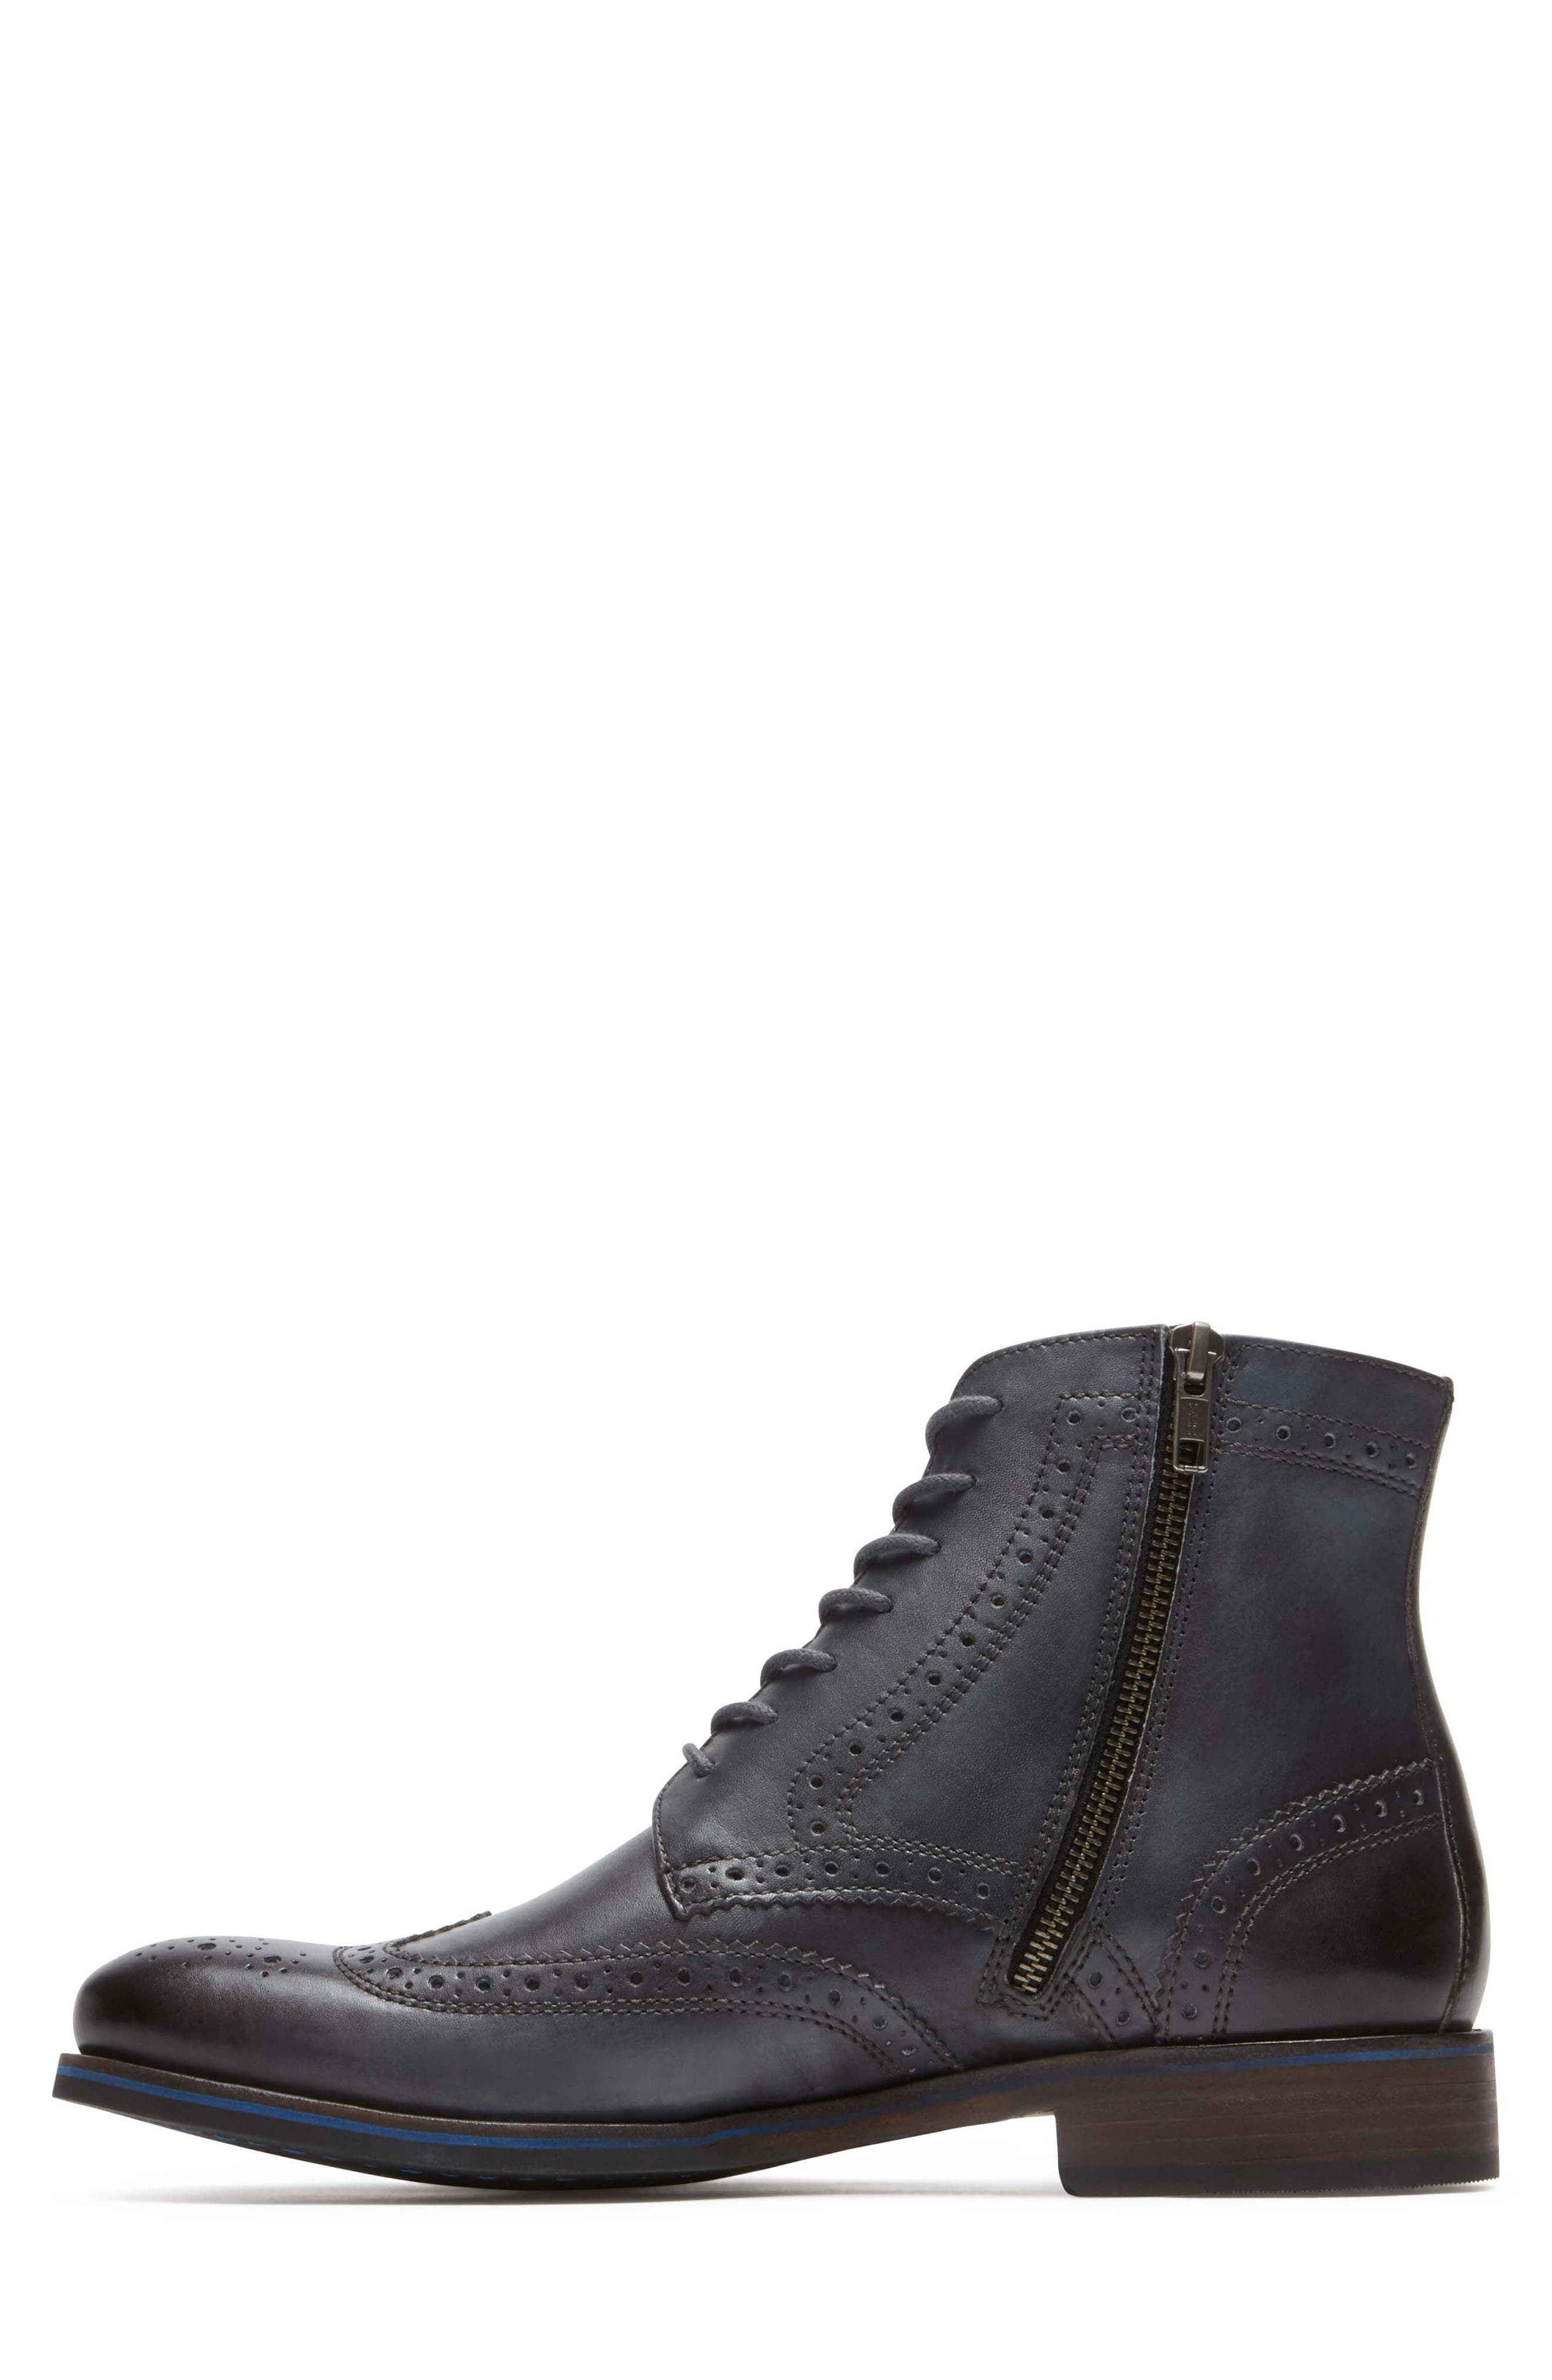 Wyat Wingtip Boot,                             Alternate thumbnail 2, color,                             Dark Shadow Leather